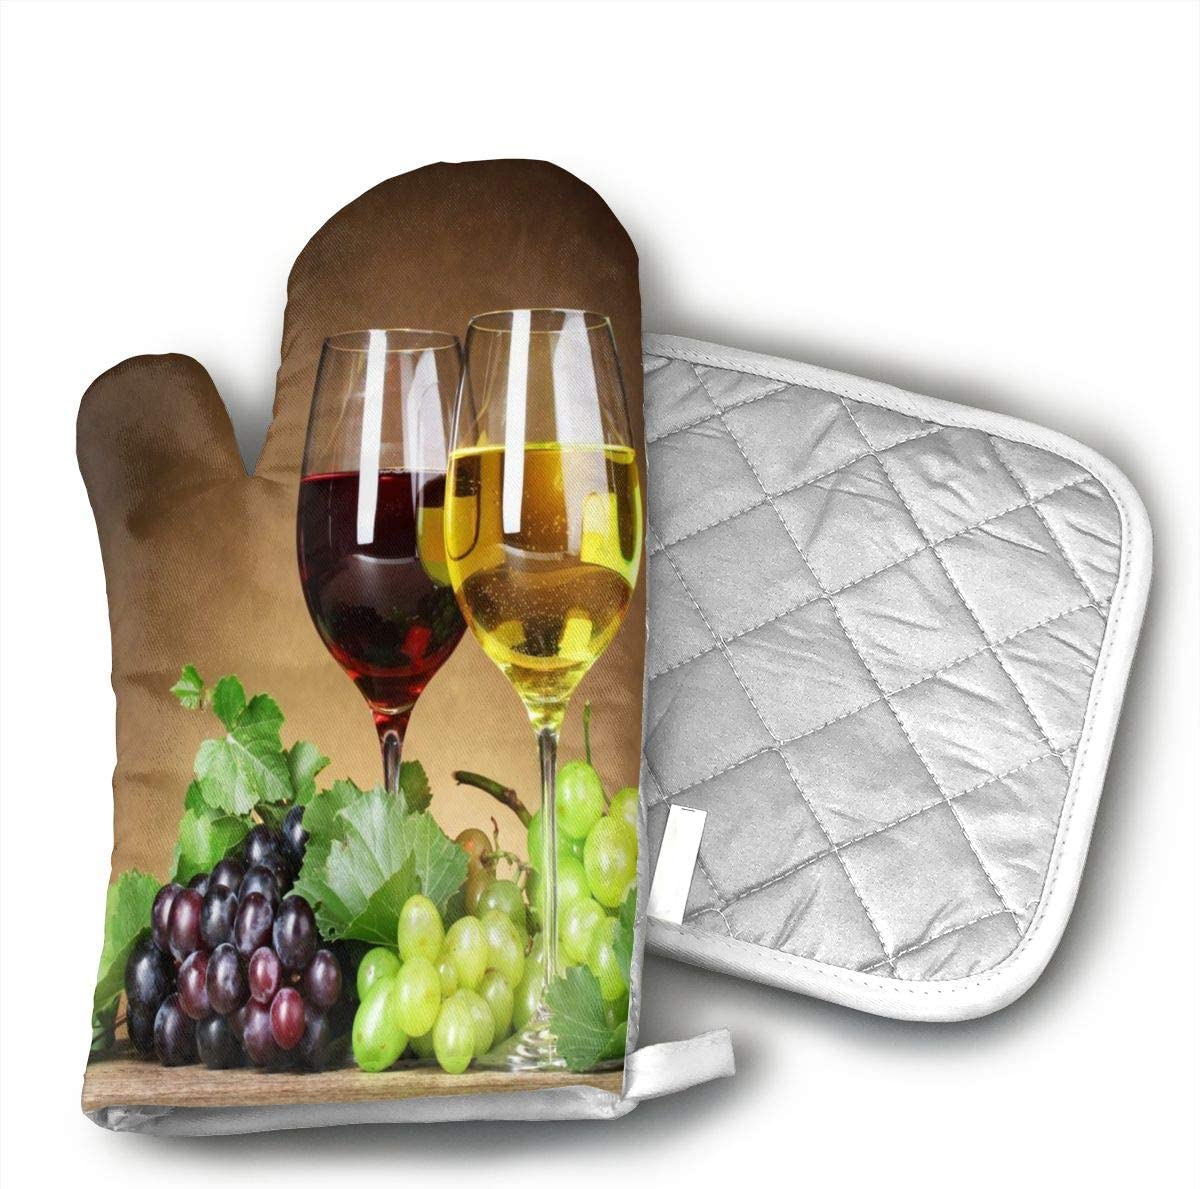 GDSJHVJNK HFNJHG Grape Wine Hand Drawn Oven Glove Heat Resistant Cooking Glove, Include A Insulated Glove and A Insulation Pad.